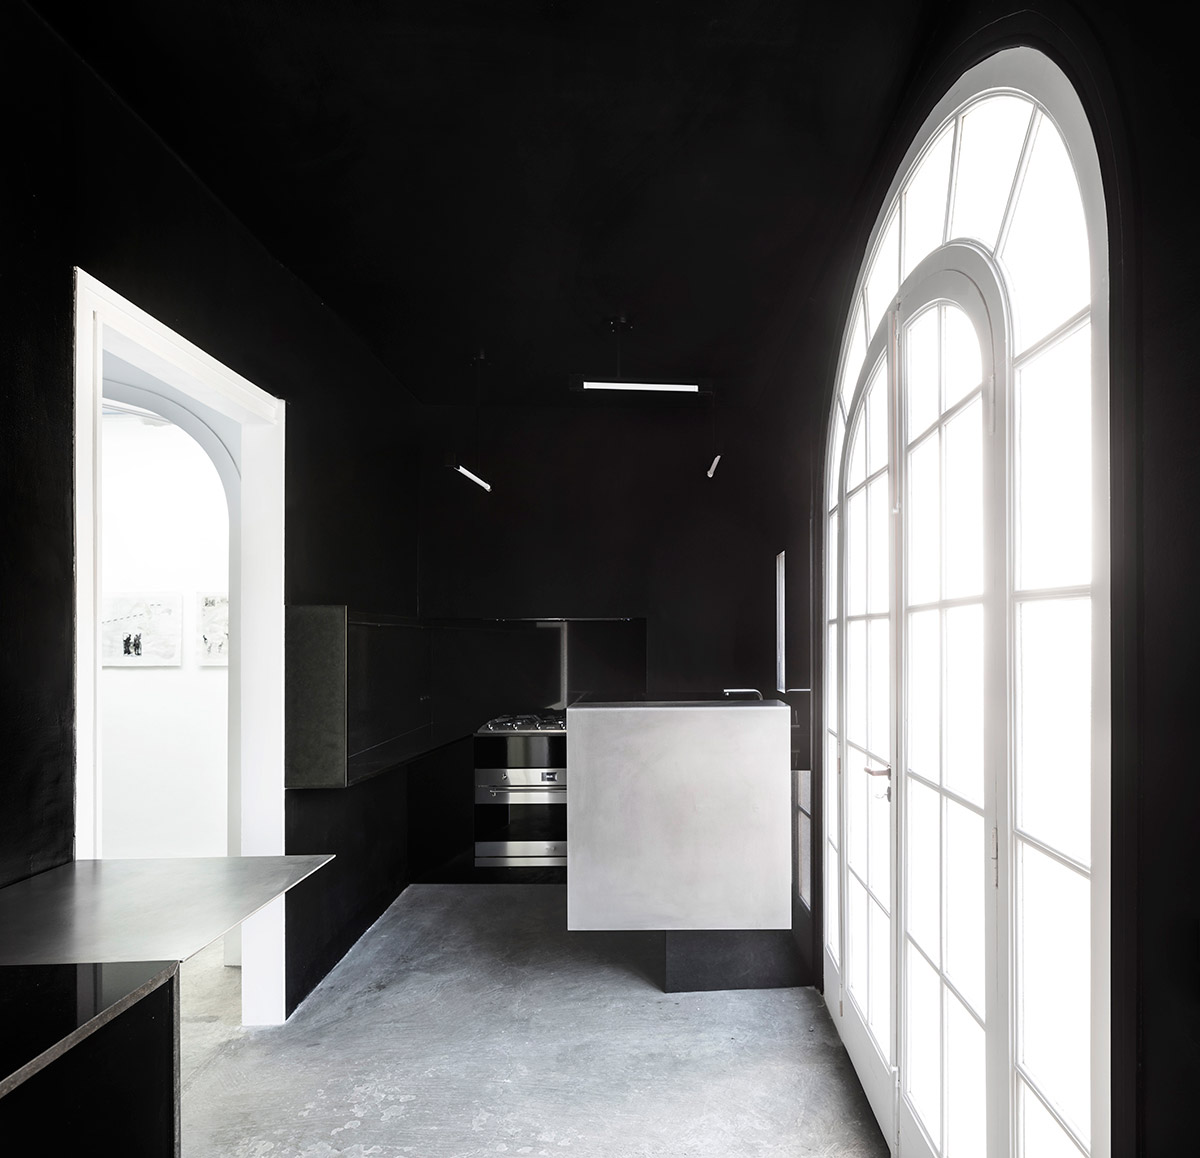 reforma_cocina_cuina_barcelona_gracia_galeria_art_arte_kitchen_renovation_refurbishment_negra_black_proyecto_projecte_interiorismo_interiorisme_pinterest_4